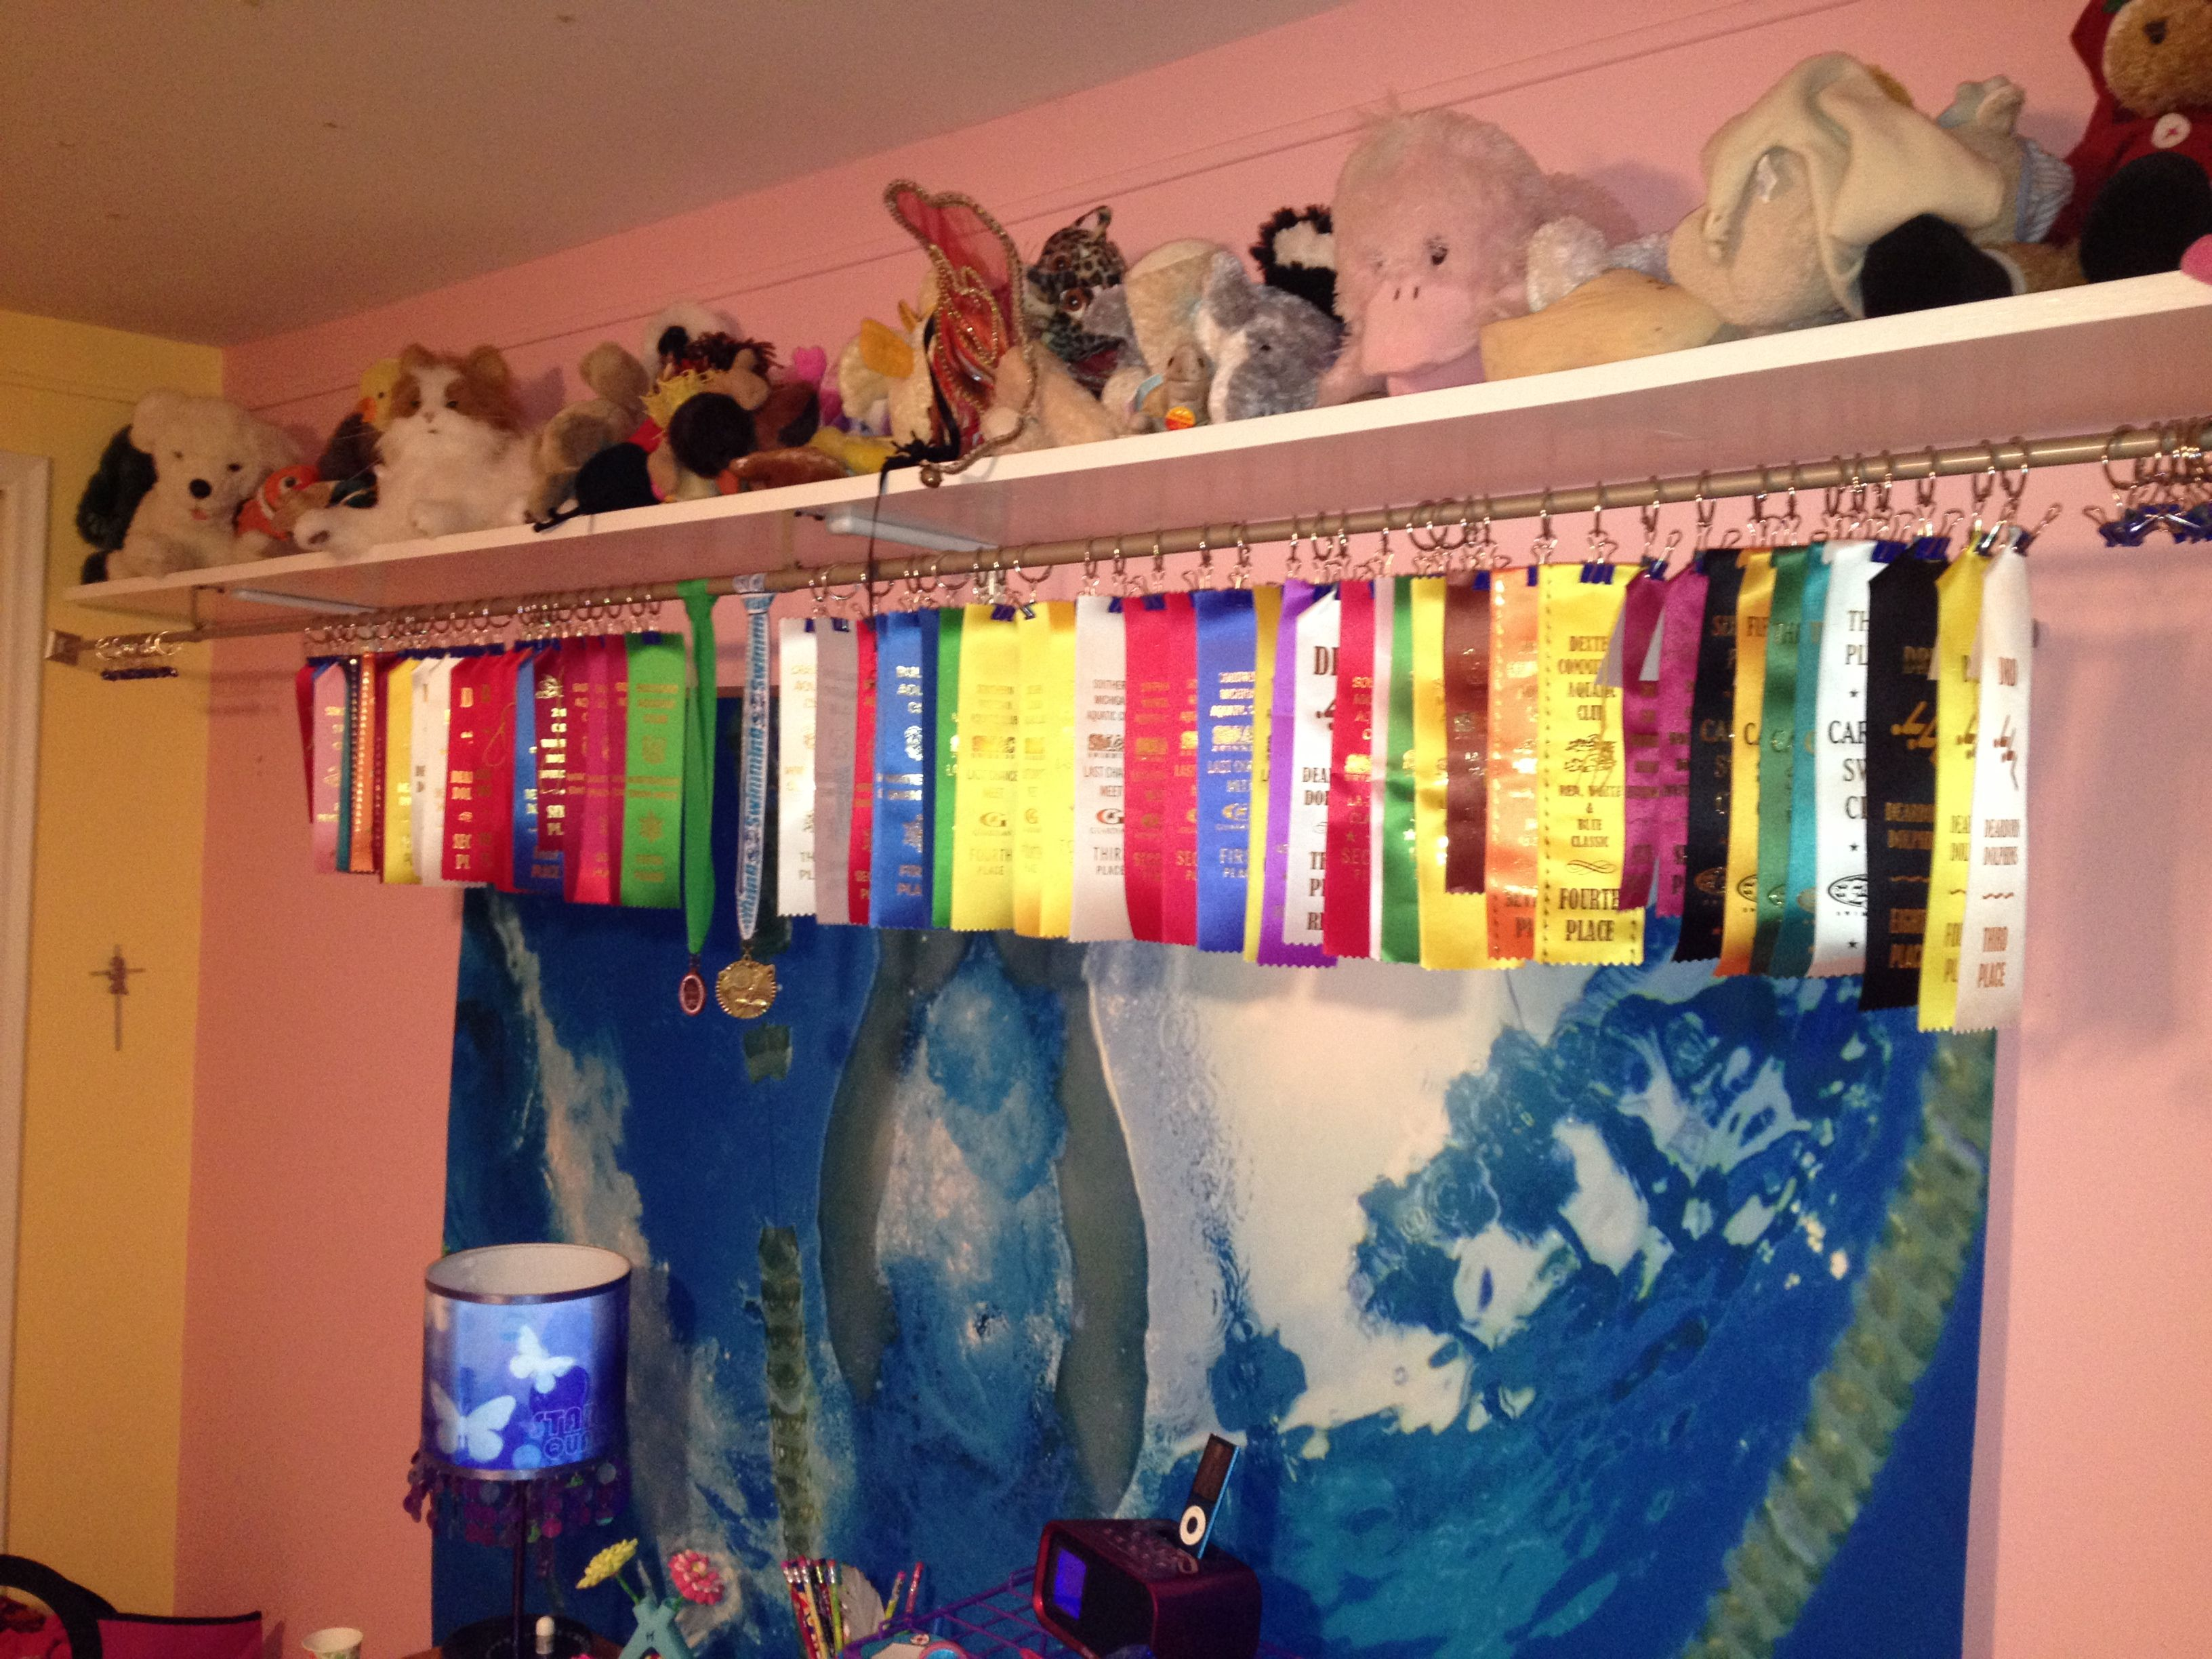 Scrapbook ideas with ribbon - Swimming Ribbon Display Idea Those Hooks Might Get Costly But The Curtain Rod